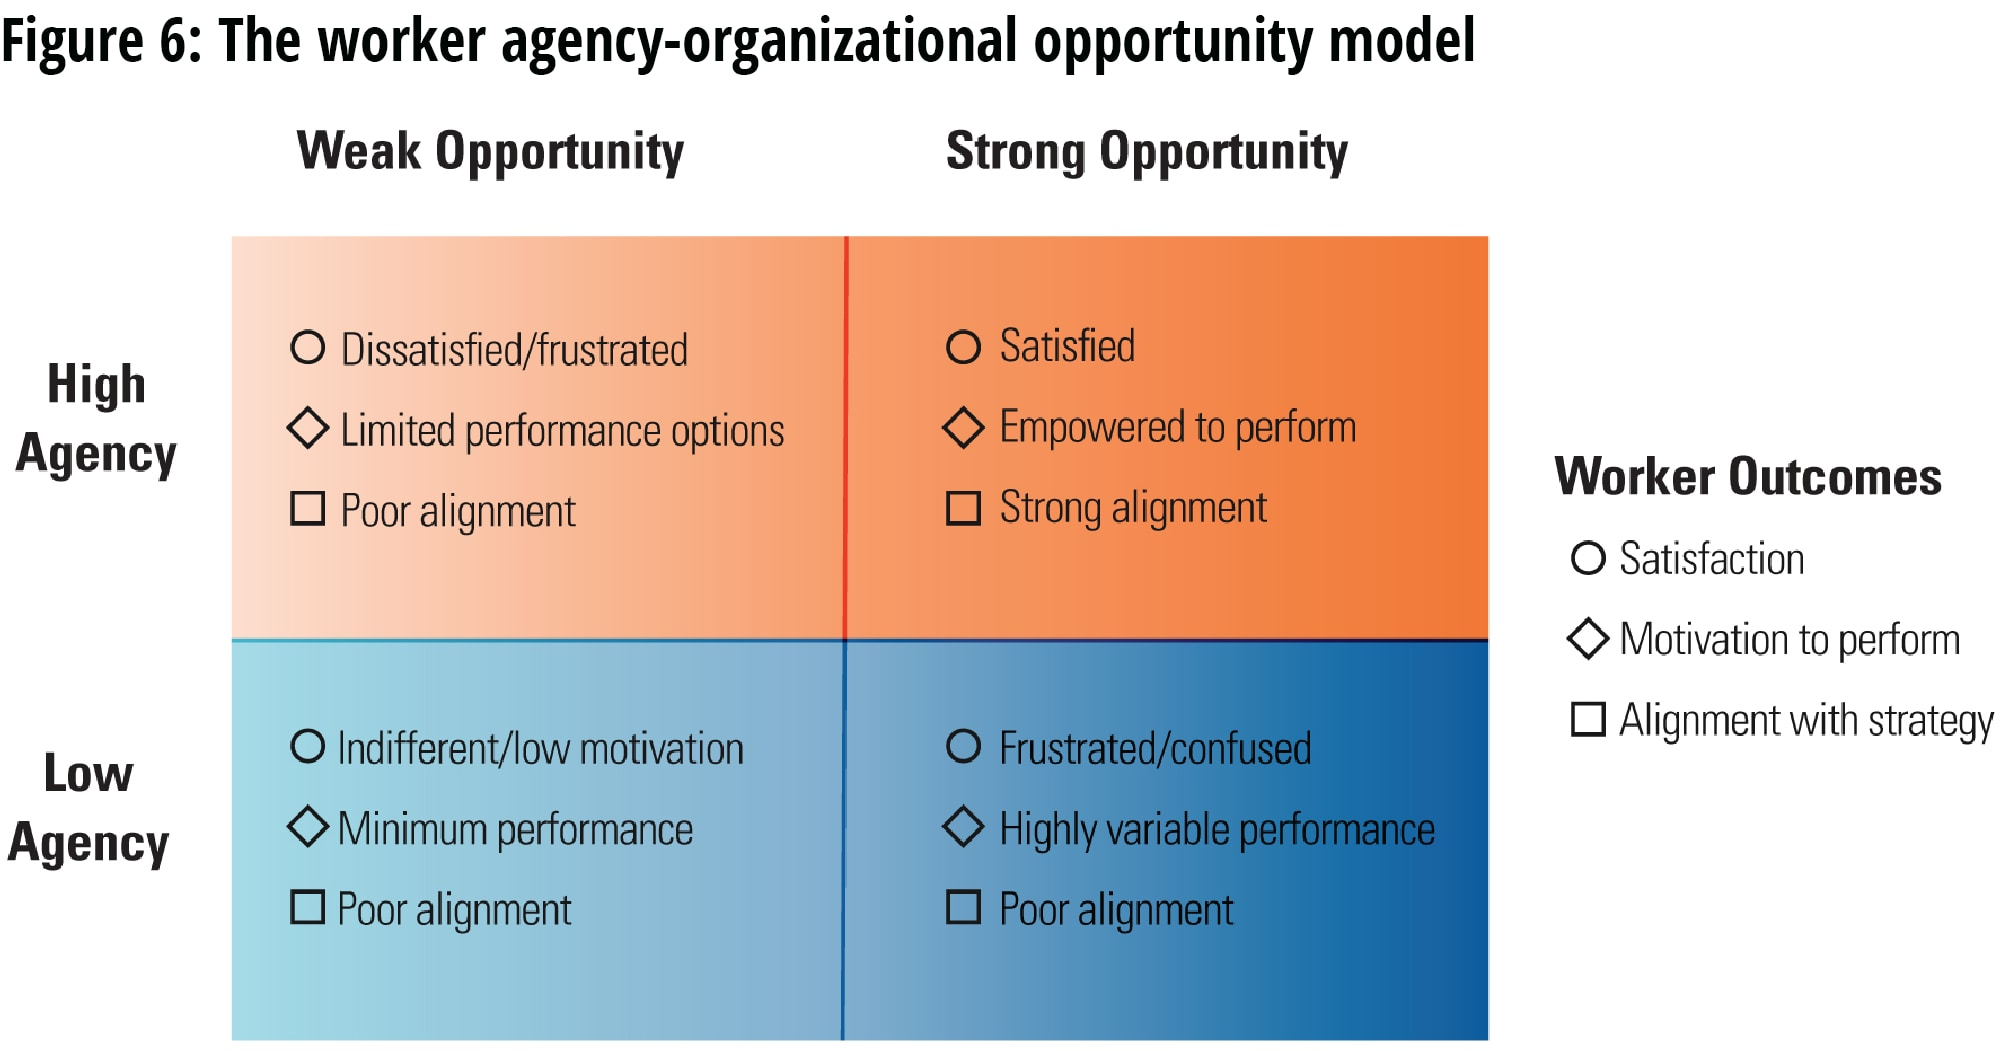 The worker agency-organizational opportunity model